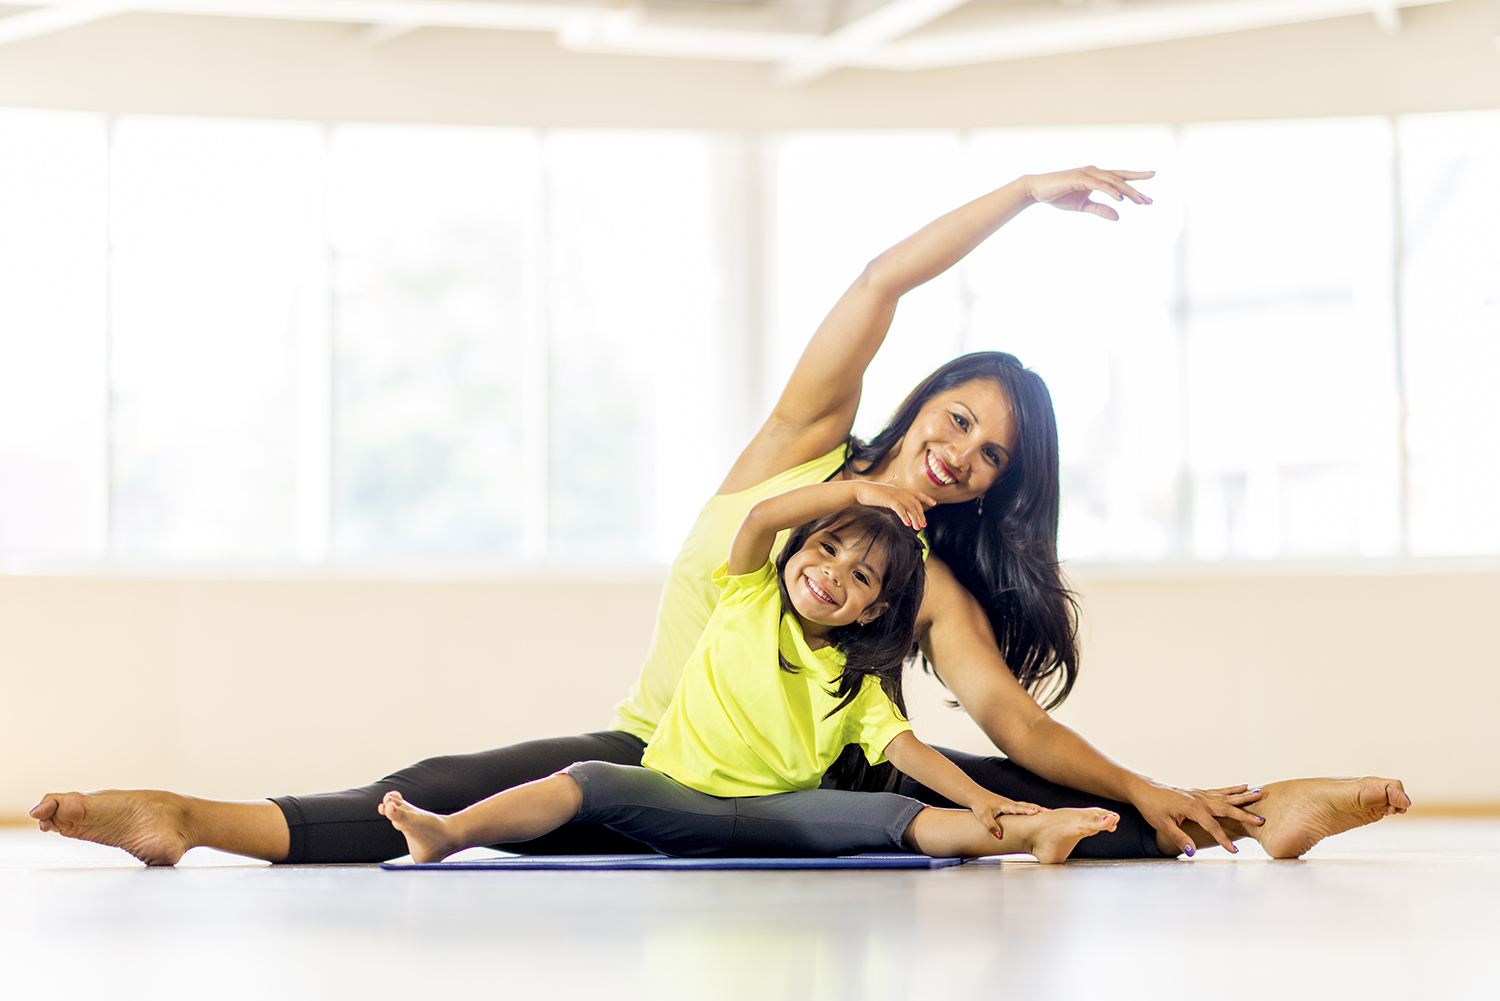 A mother and her cute little girl are stretching together during a yoga class - they are reaching their arms overhead and are stretching to their toes. They are wearing matching athletic clothing and are smiling and looking at the camera.